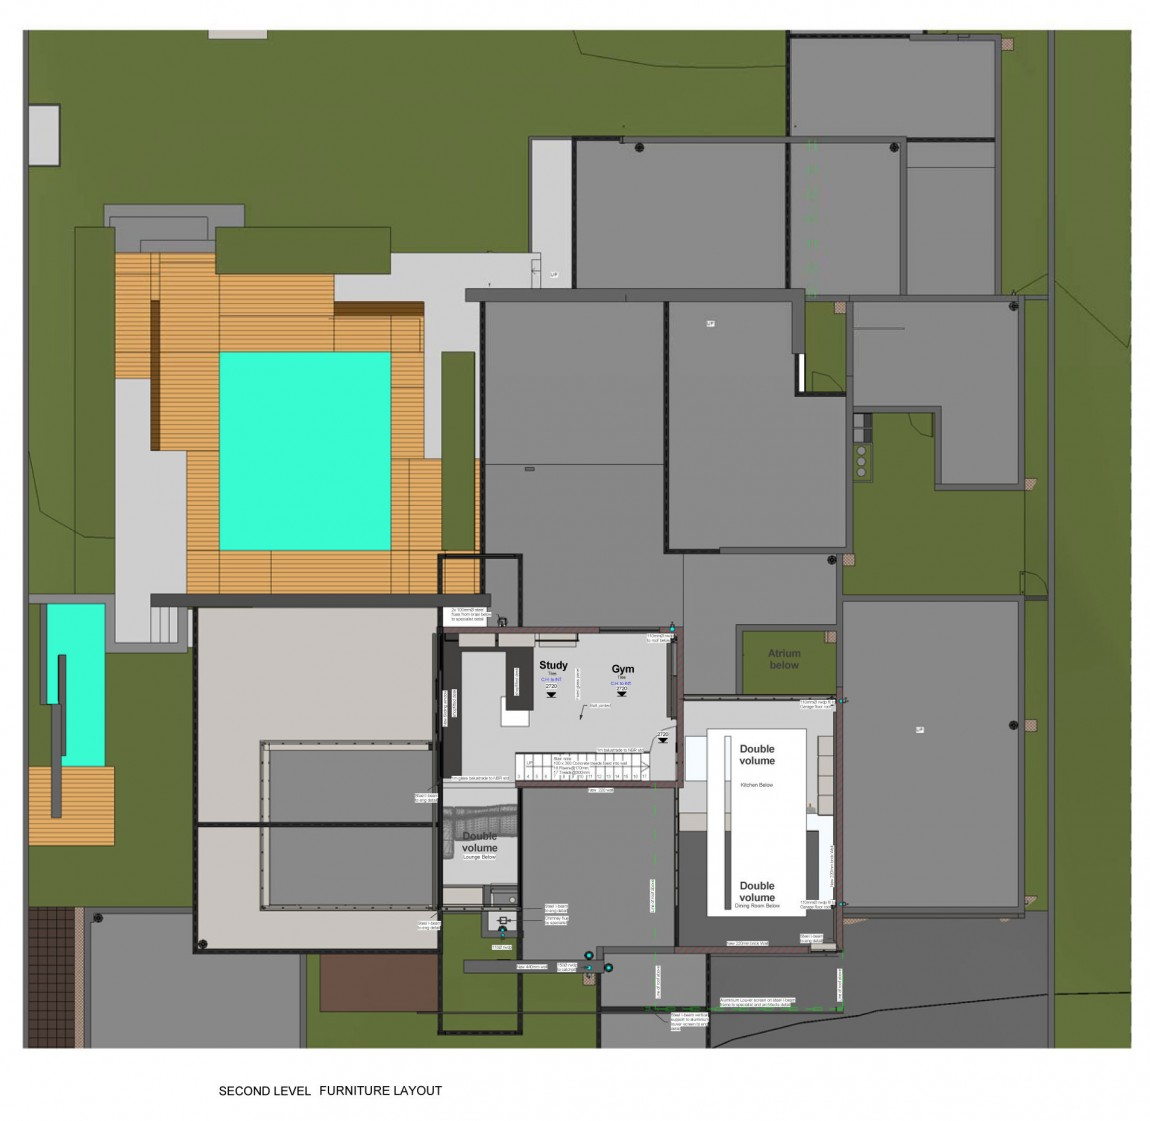 Floor plan of House Sar by Nico van der Meulen Architects